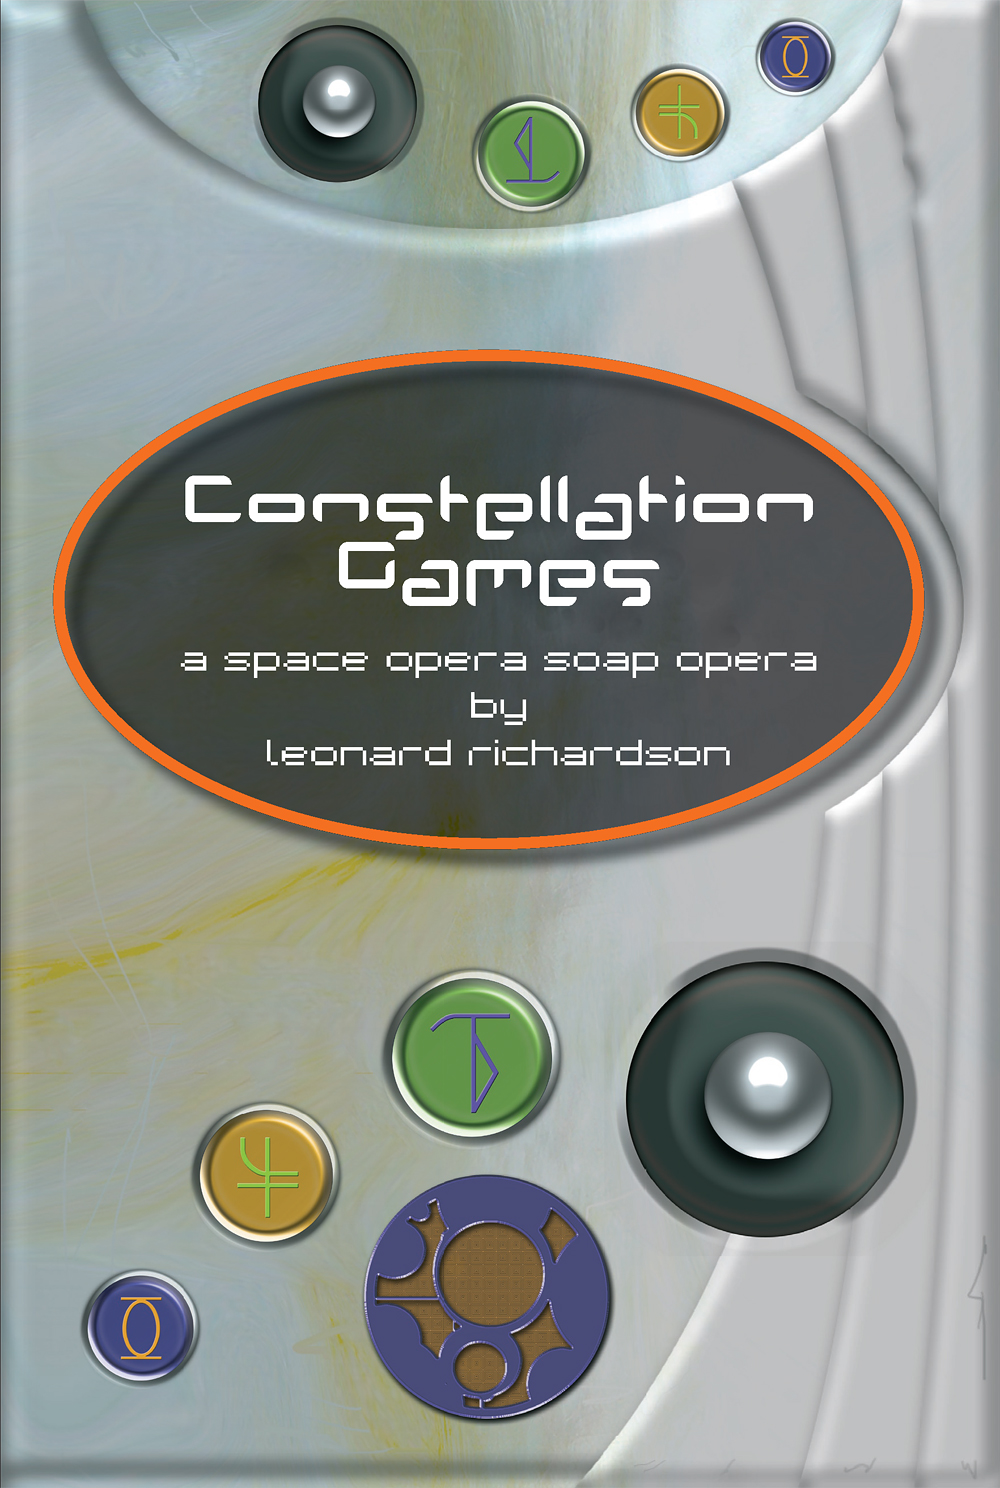 Categories Sumana Reading Mad Max Engine Diagram Constellation Games By Leonard Richardson